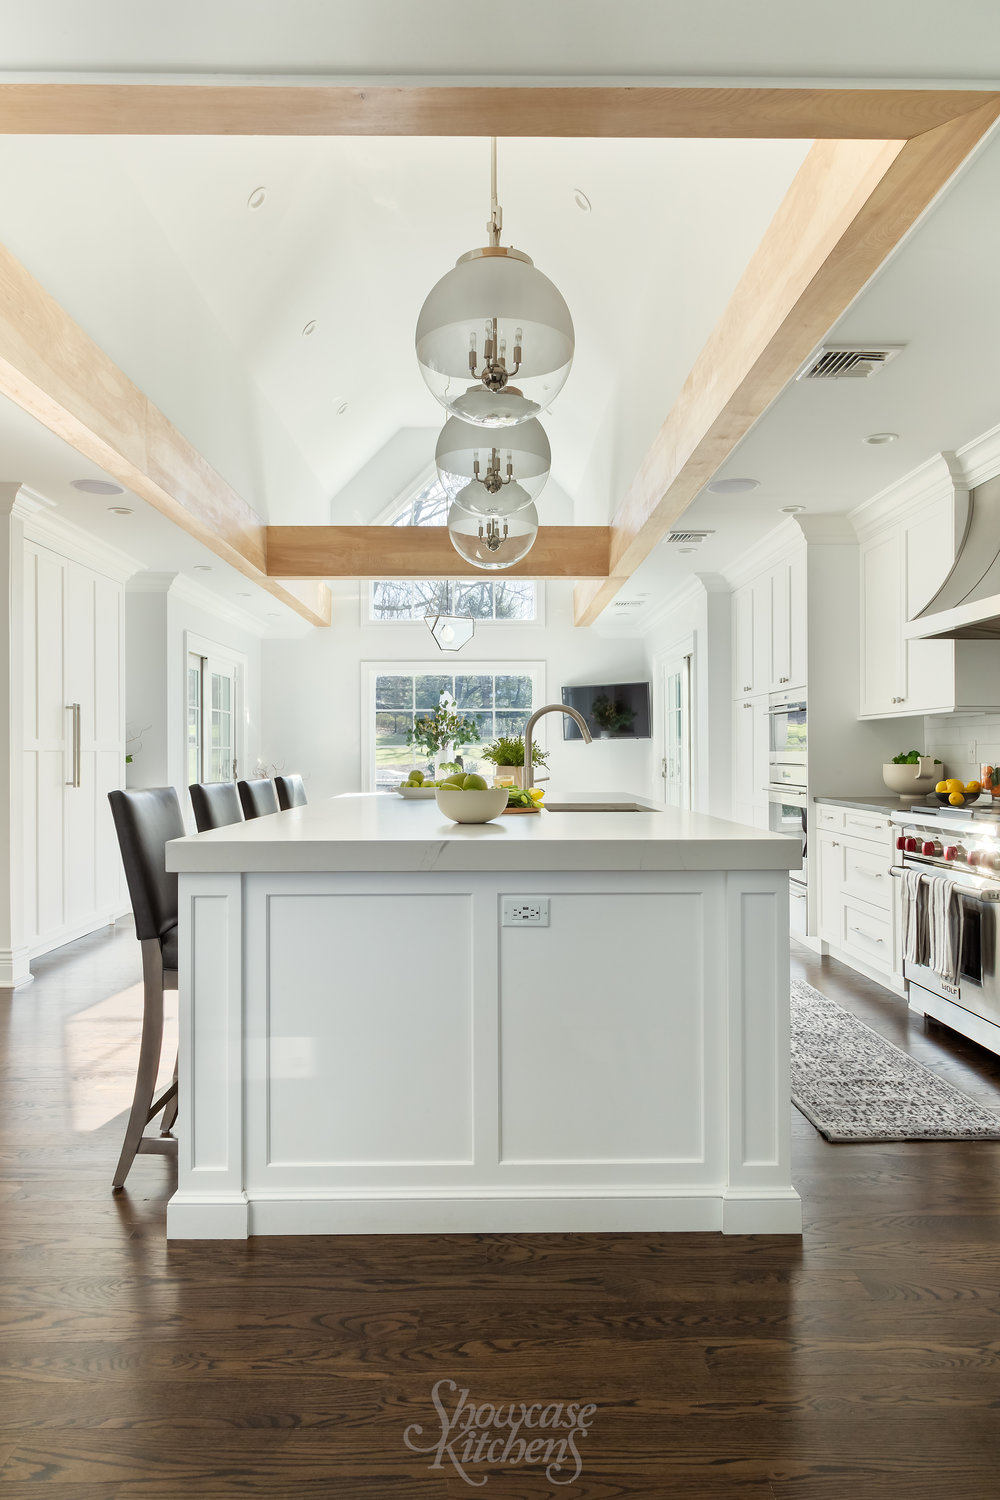 Transitional kitchen with flying beam and large center island